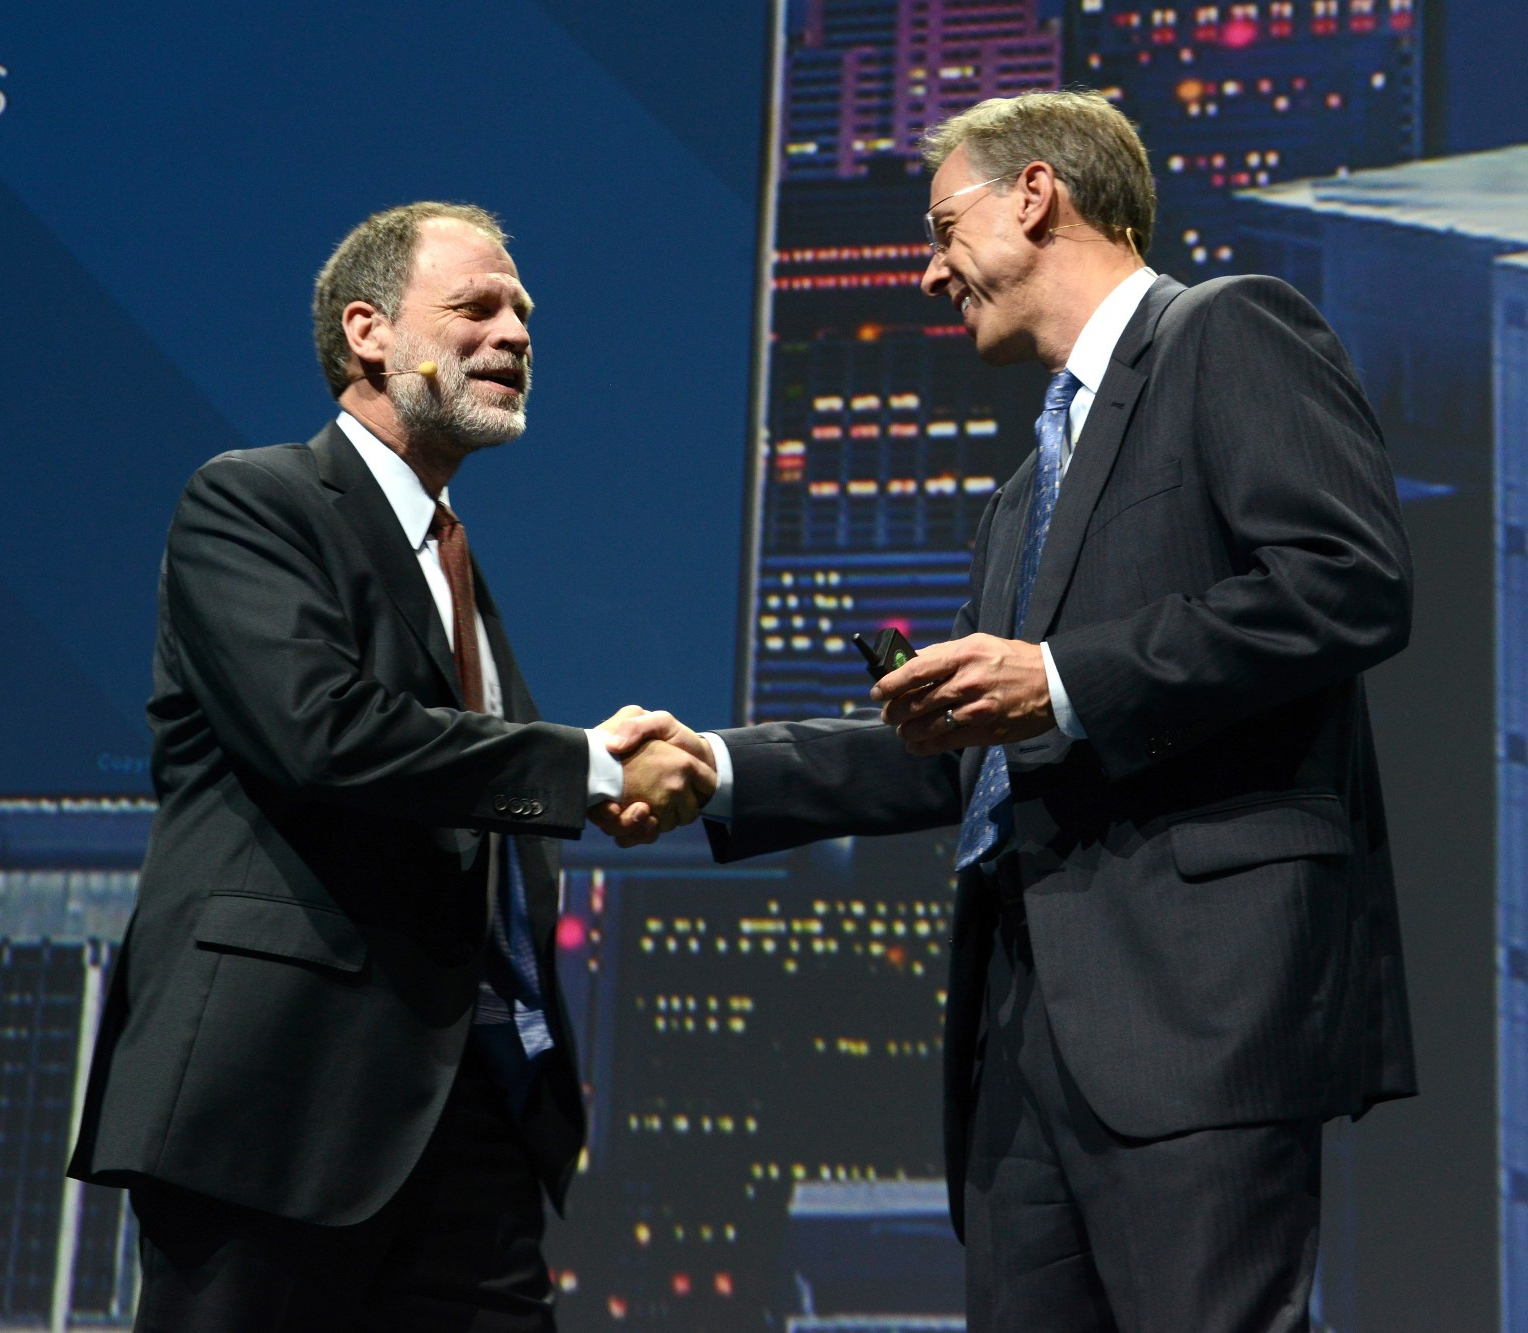 Fritz Lehman, Executive Vice President and Chief Customer Officer, SAS con Randy Guard, Executive Vice President and Chief Marketing Officer, SAS